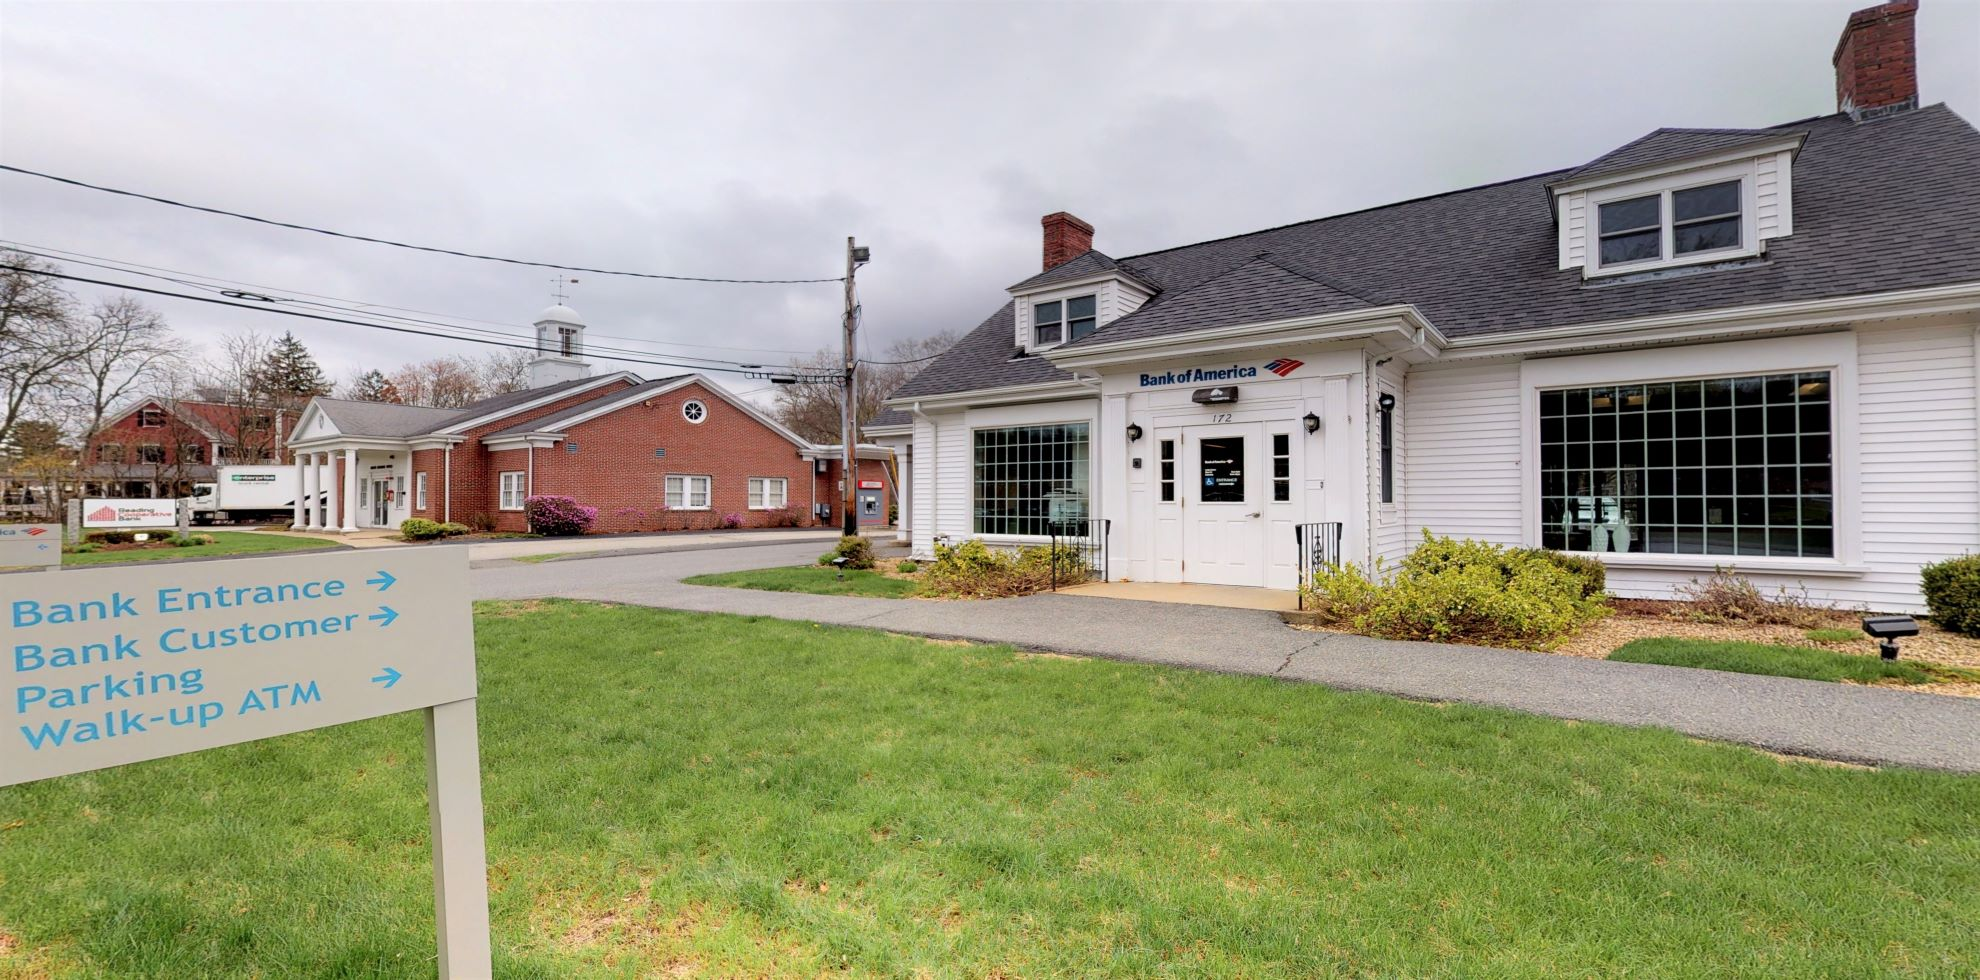 Bank of America financial center with drive-thru ATM | 172 Park St, North Reading, MA 01864